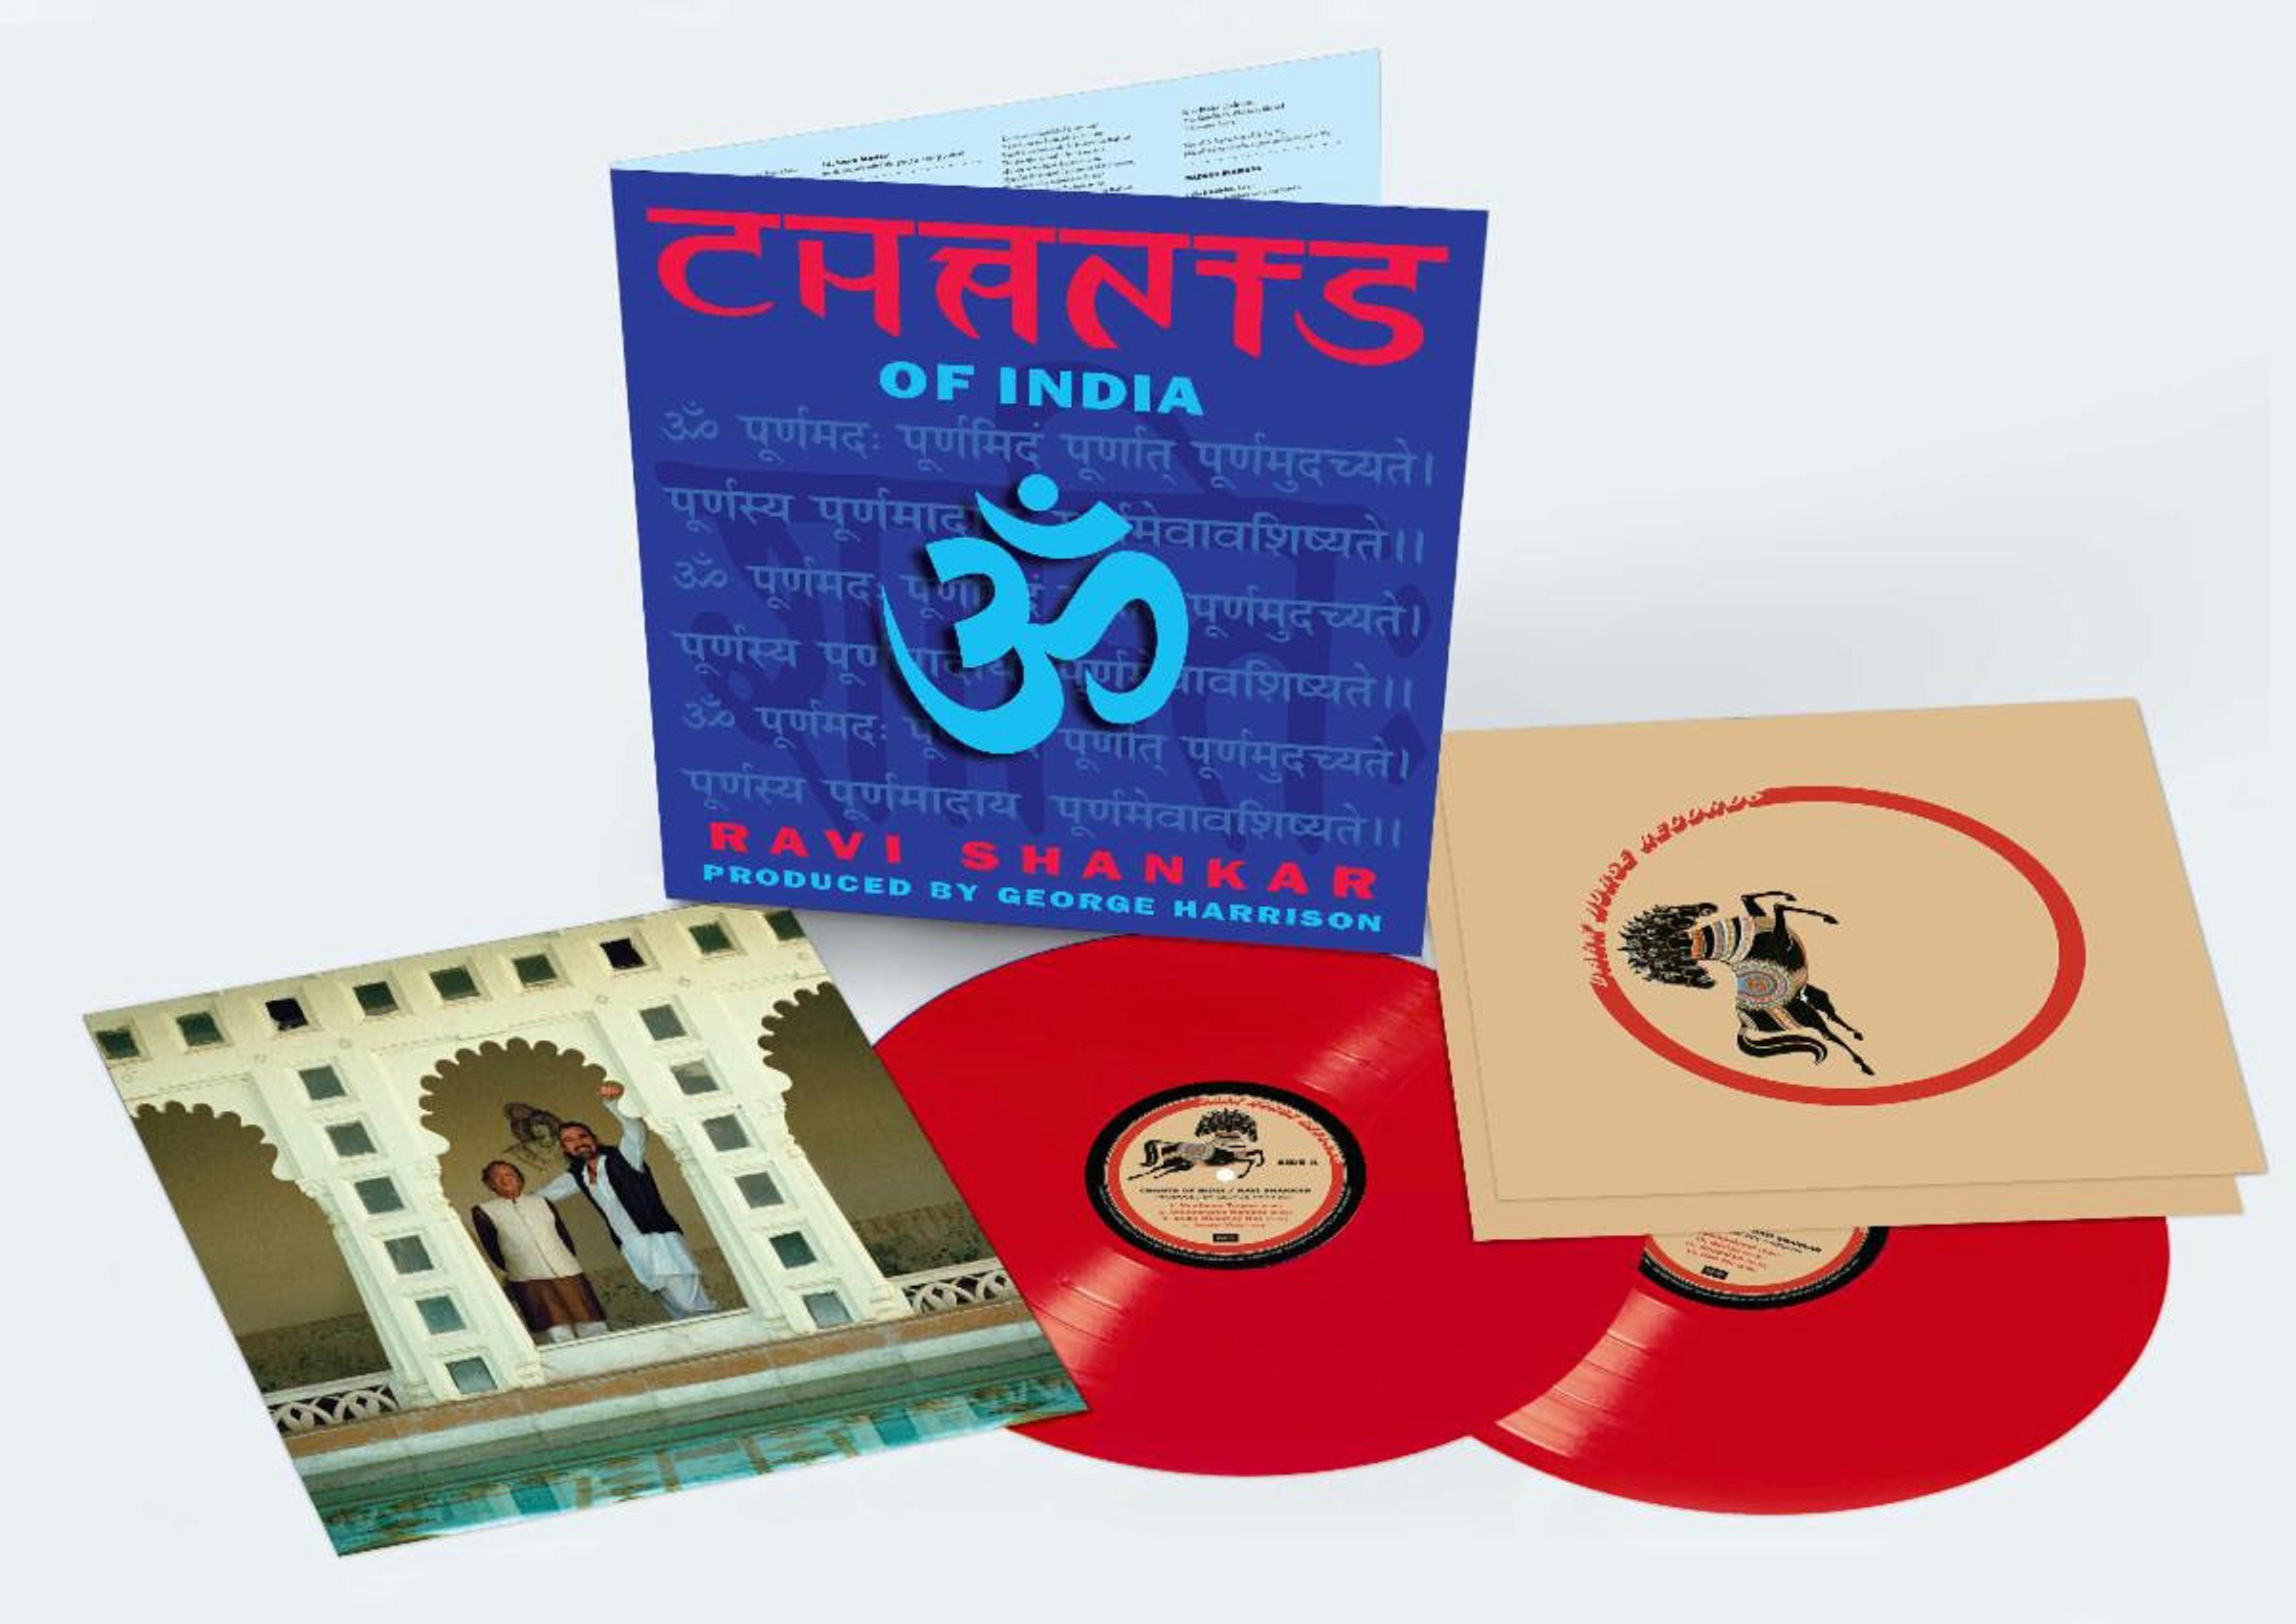 Dark Horse Records celebrate Ravi Shankar's first-ever vinyl release of 'Chants Of India'